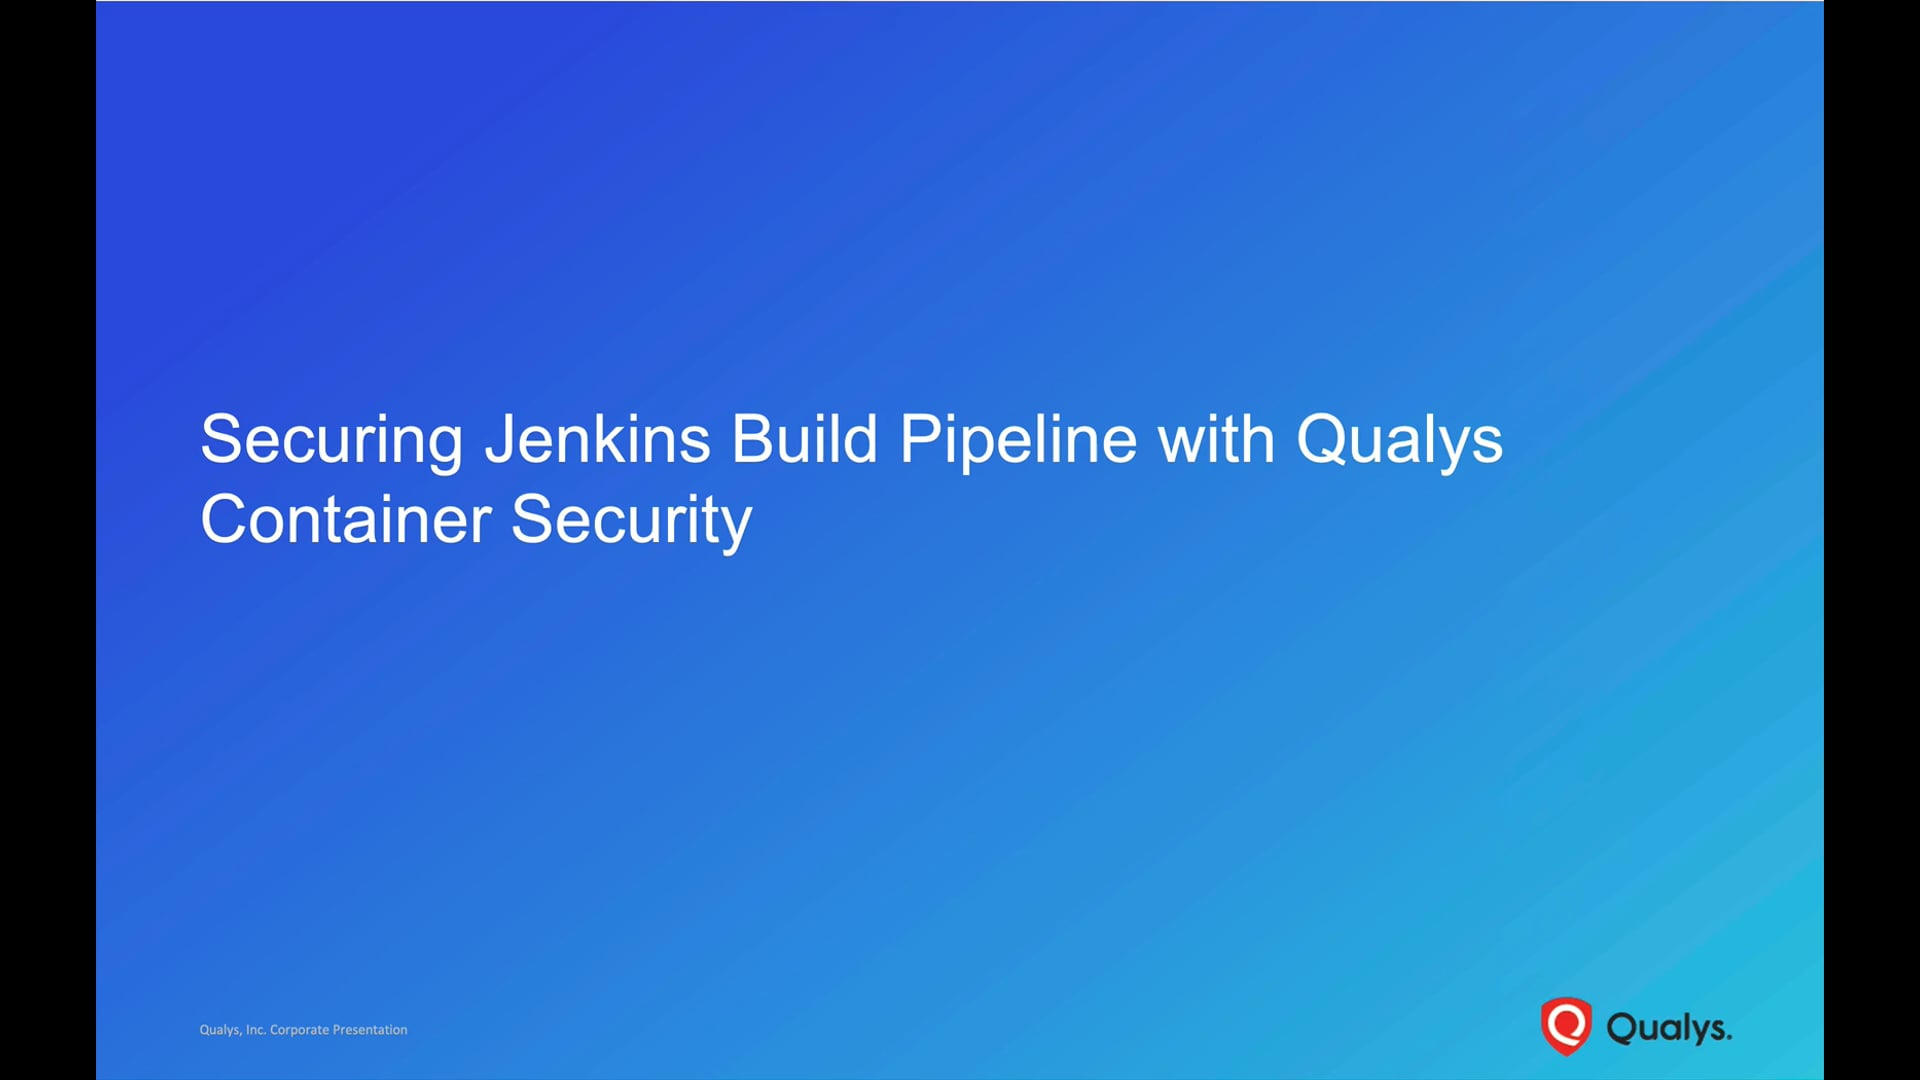 Securing Jenkins Build Pipeline with Qualys Container Security